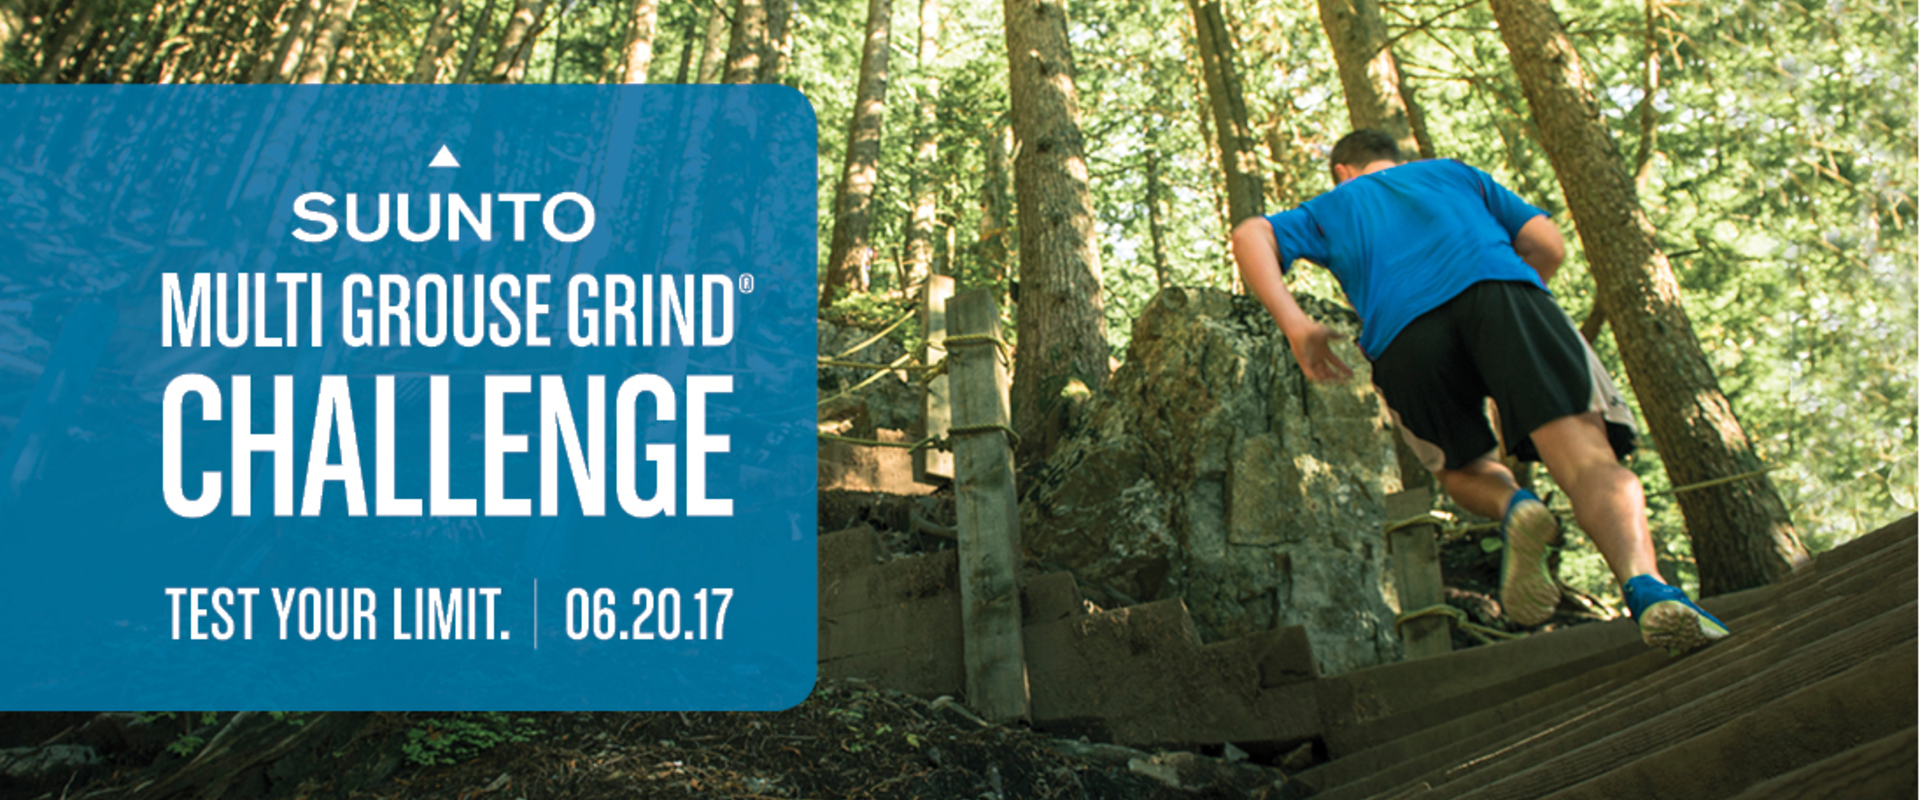 Multi Grouse Grind Challenge 2017